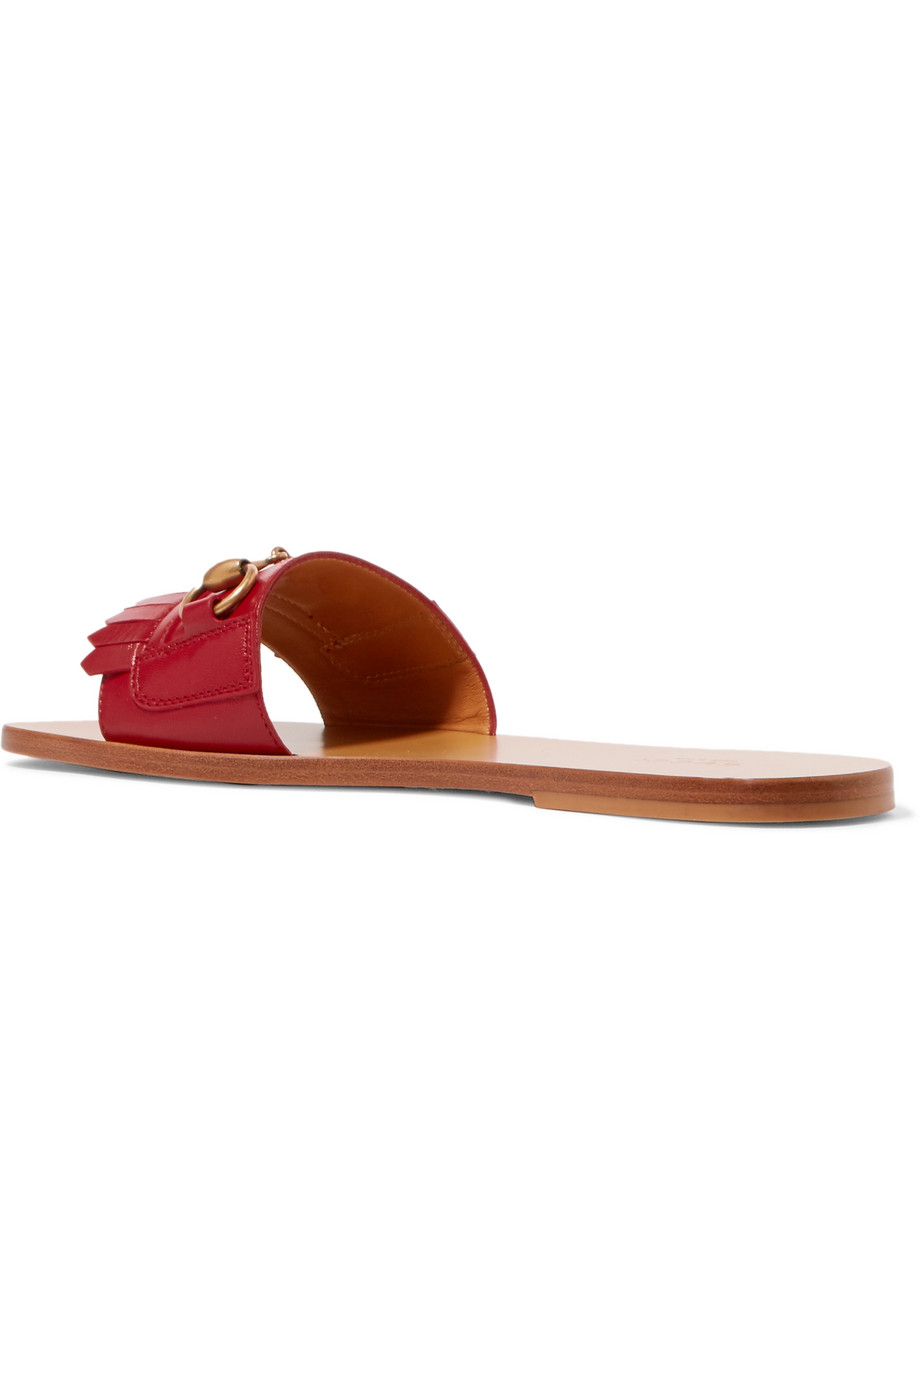 Leather slippers Gucci buy Leather slippers Gucci internet shop